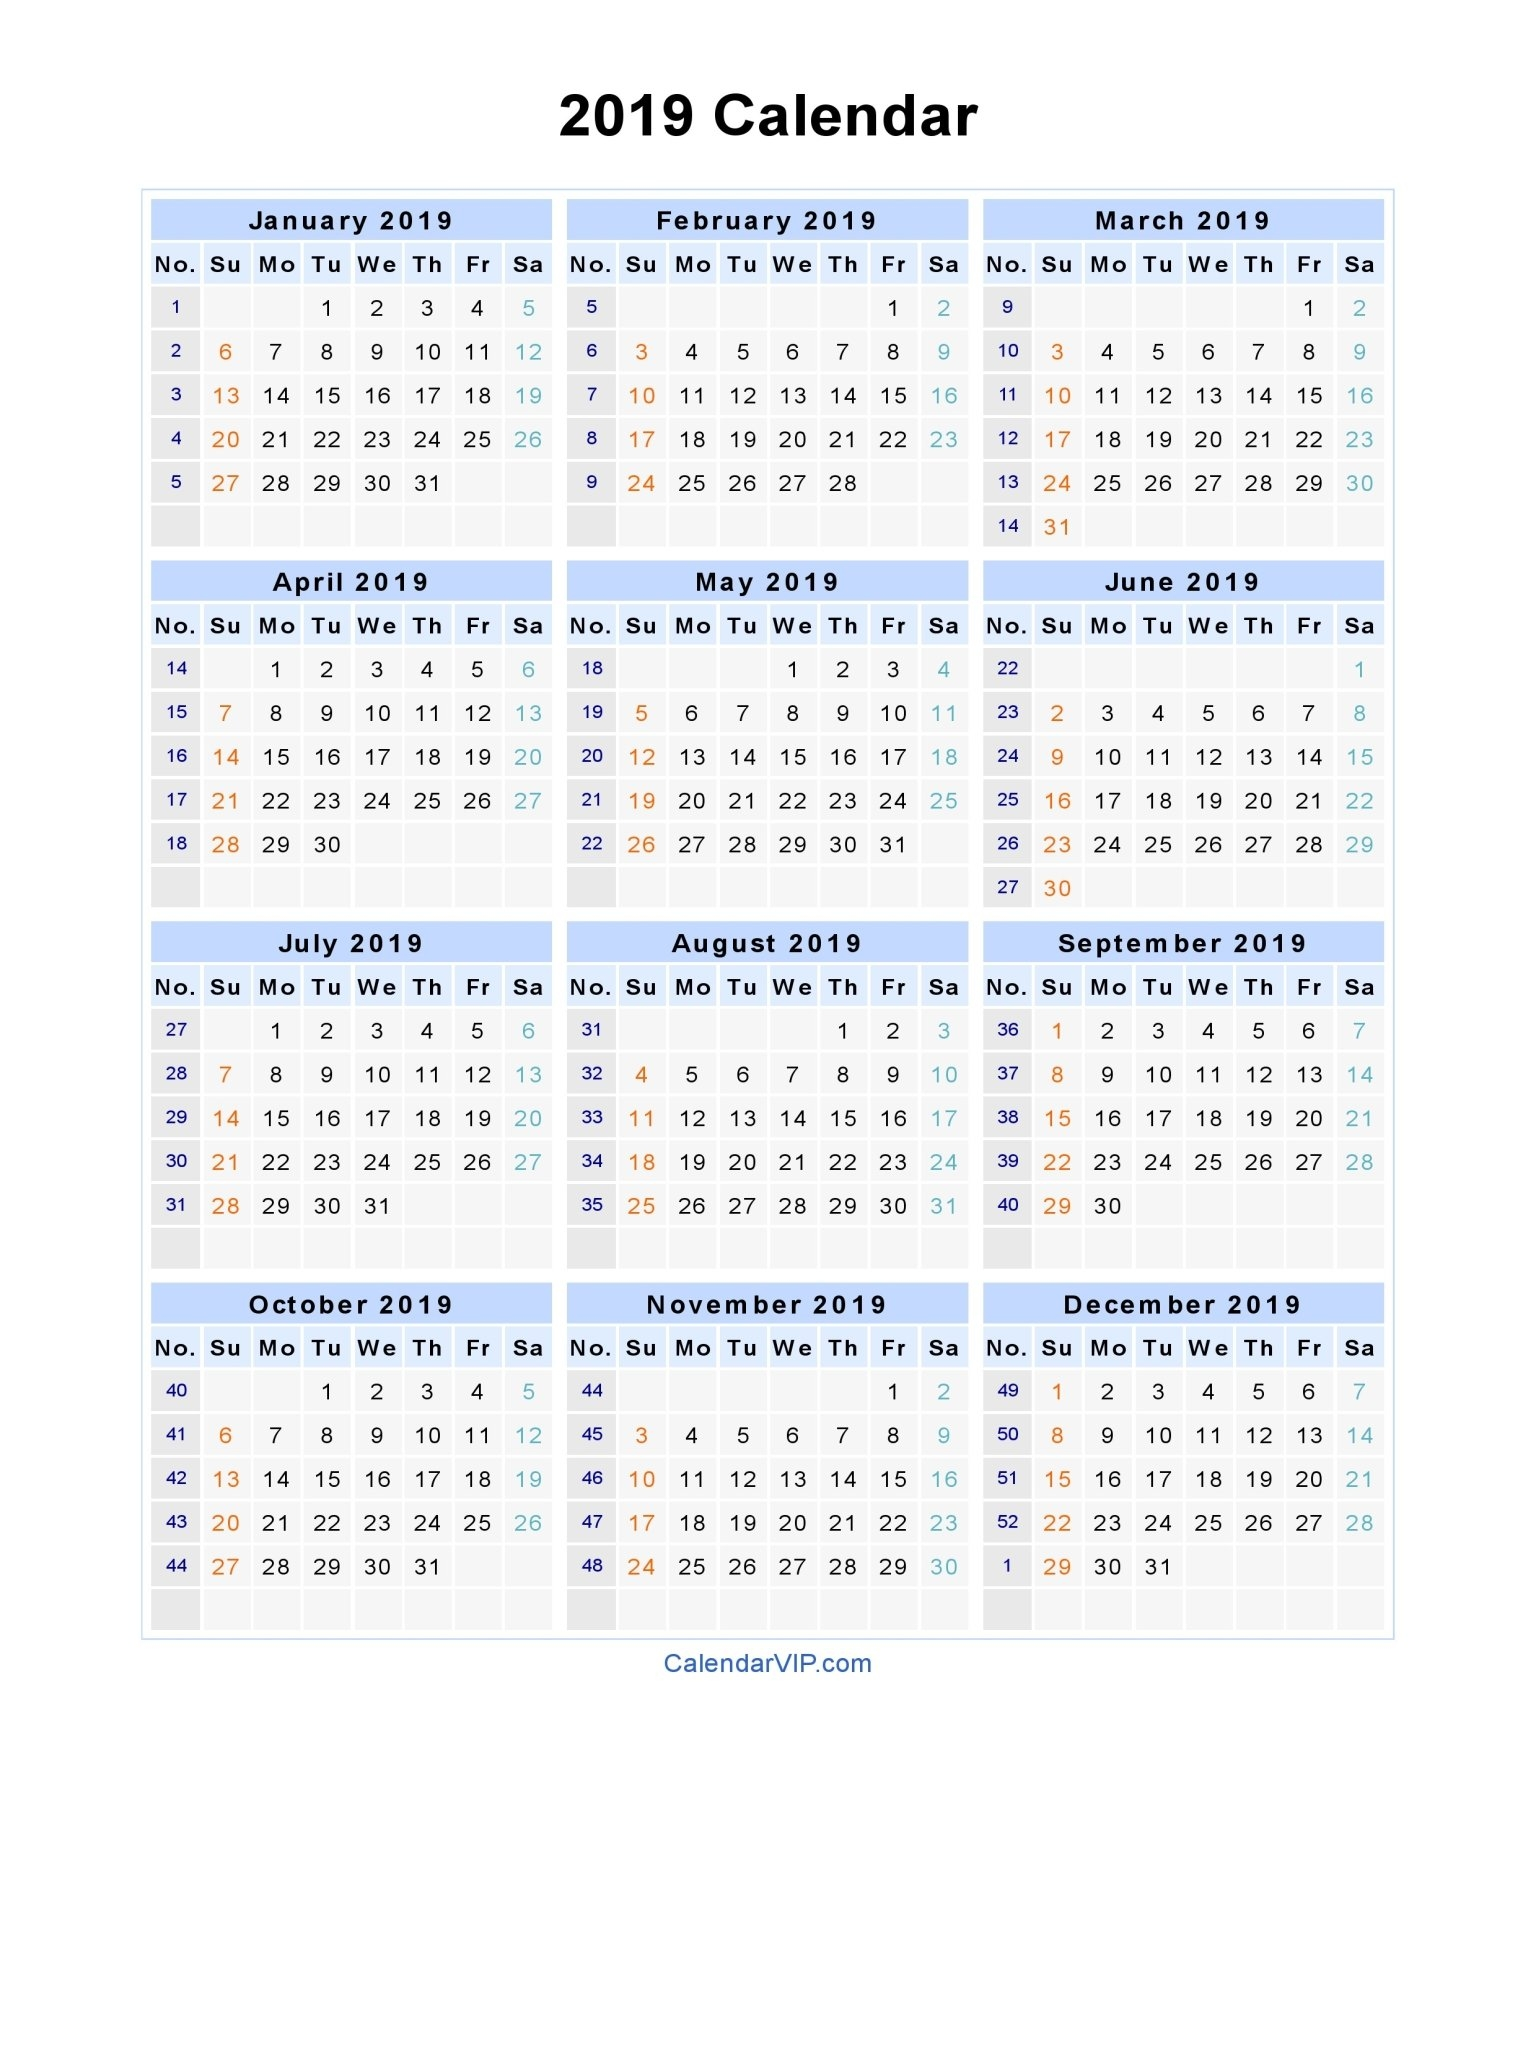 2019 Calendar - Blank Printable Calendar Template In Pdf Word Excel Calendar 2019 In Weeks